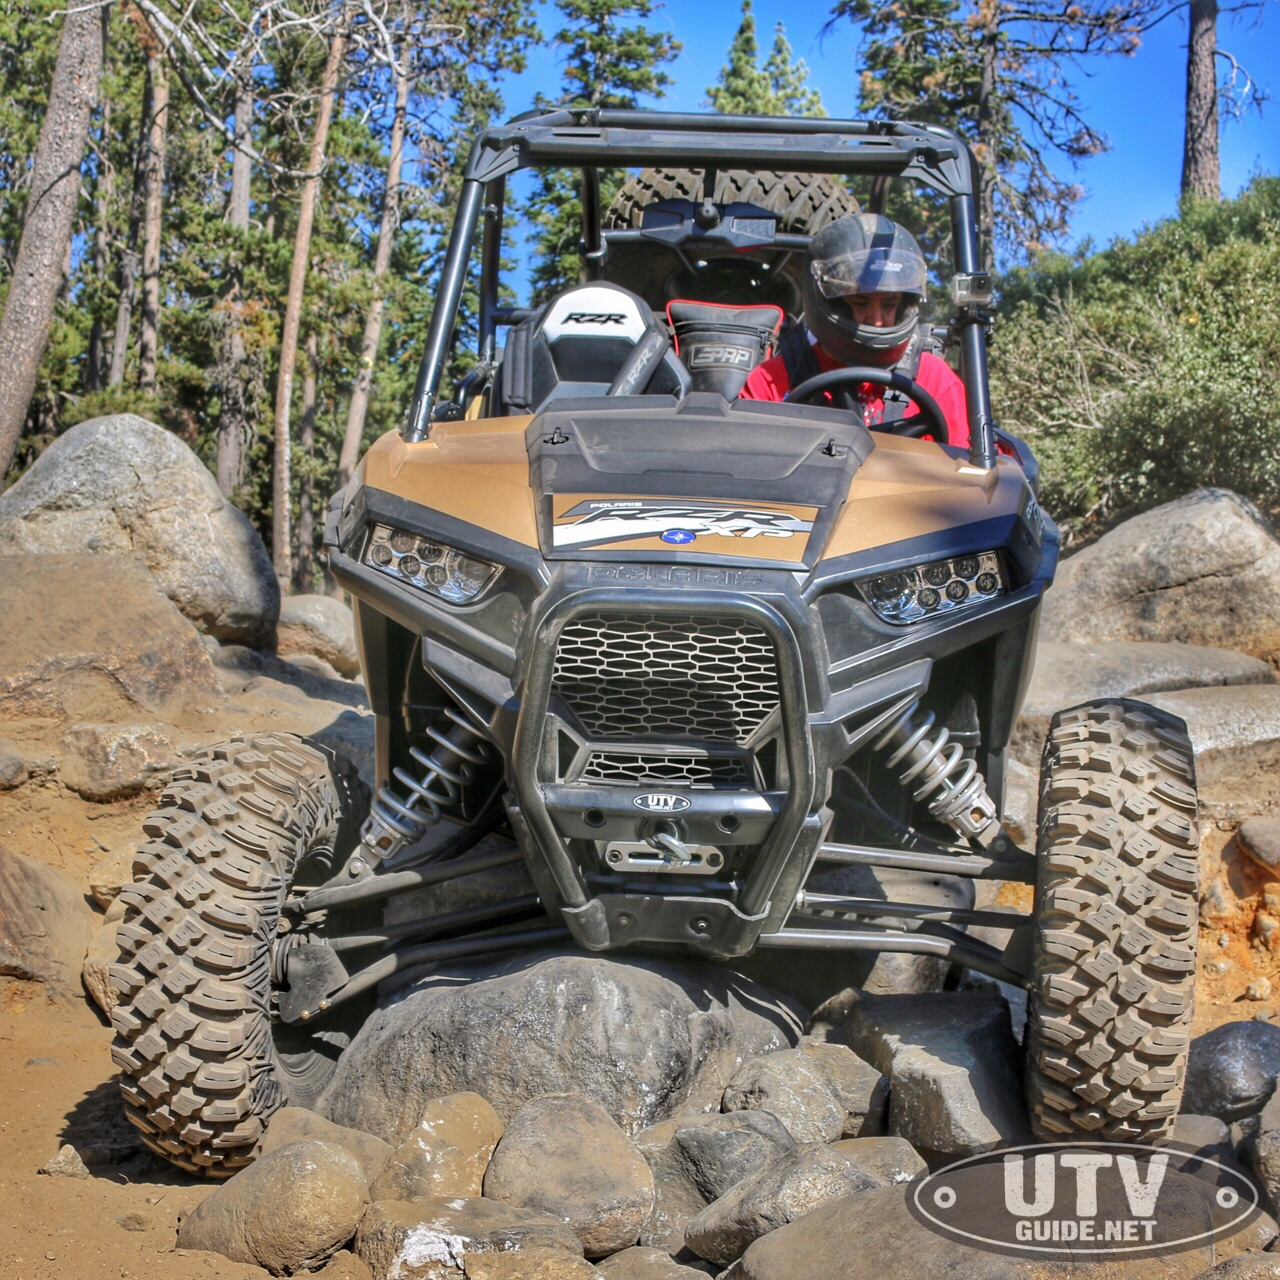 Polaris RZR XP 1000 Rock Crawler